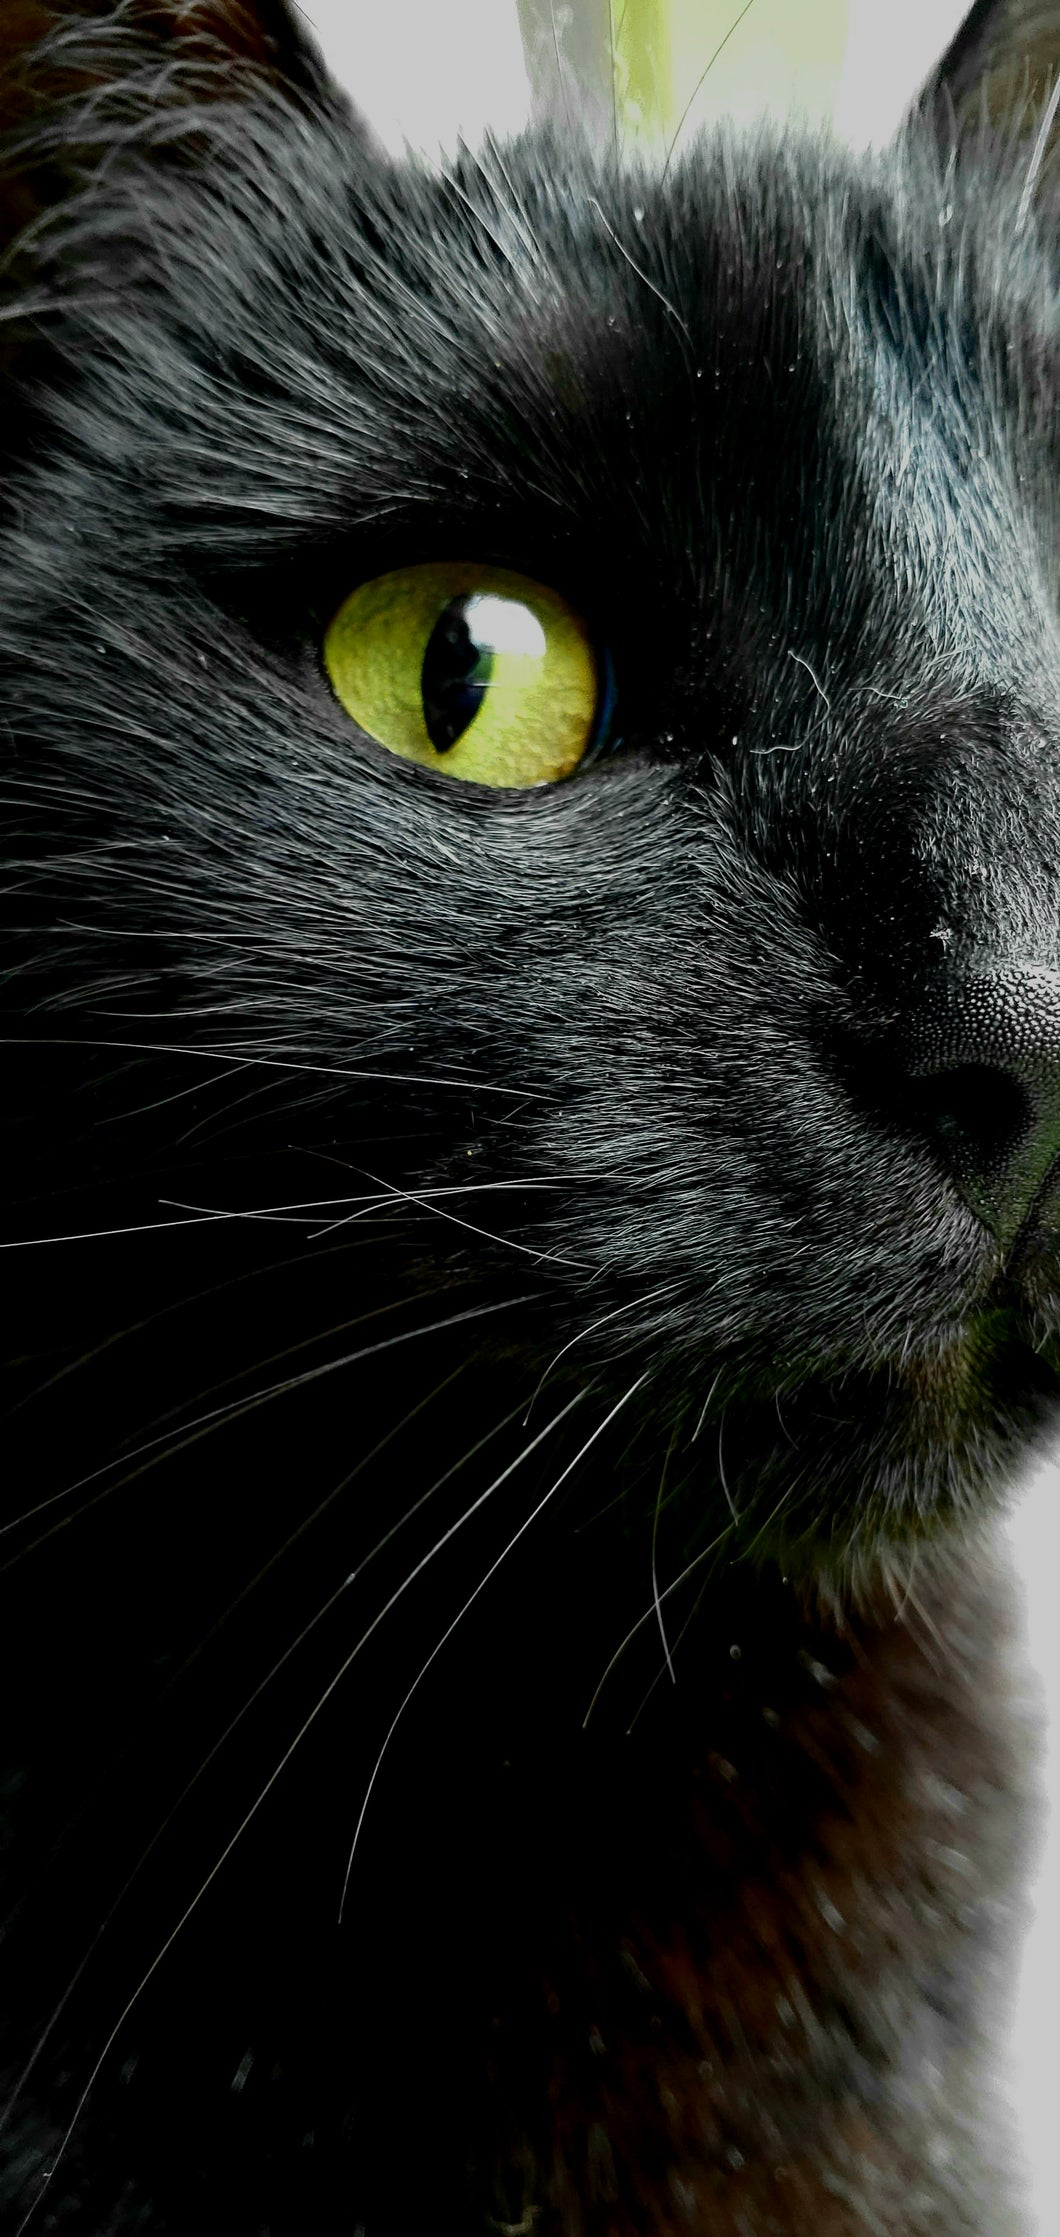 Black Cat with Yellow eye Up Close